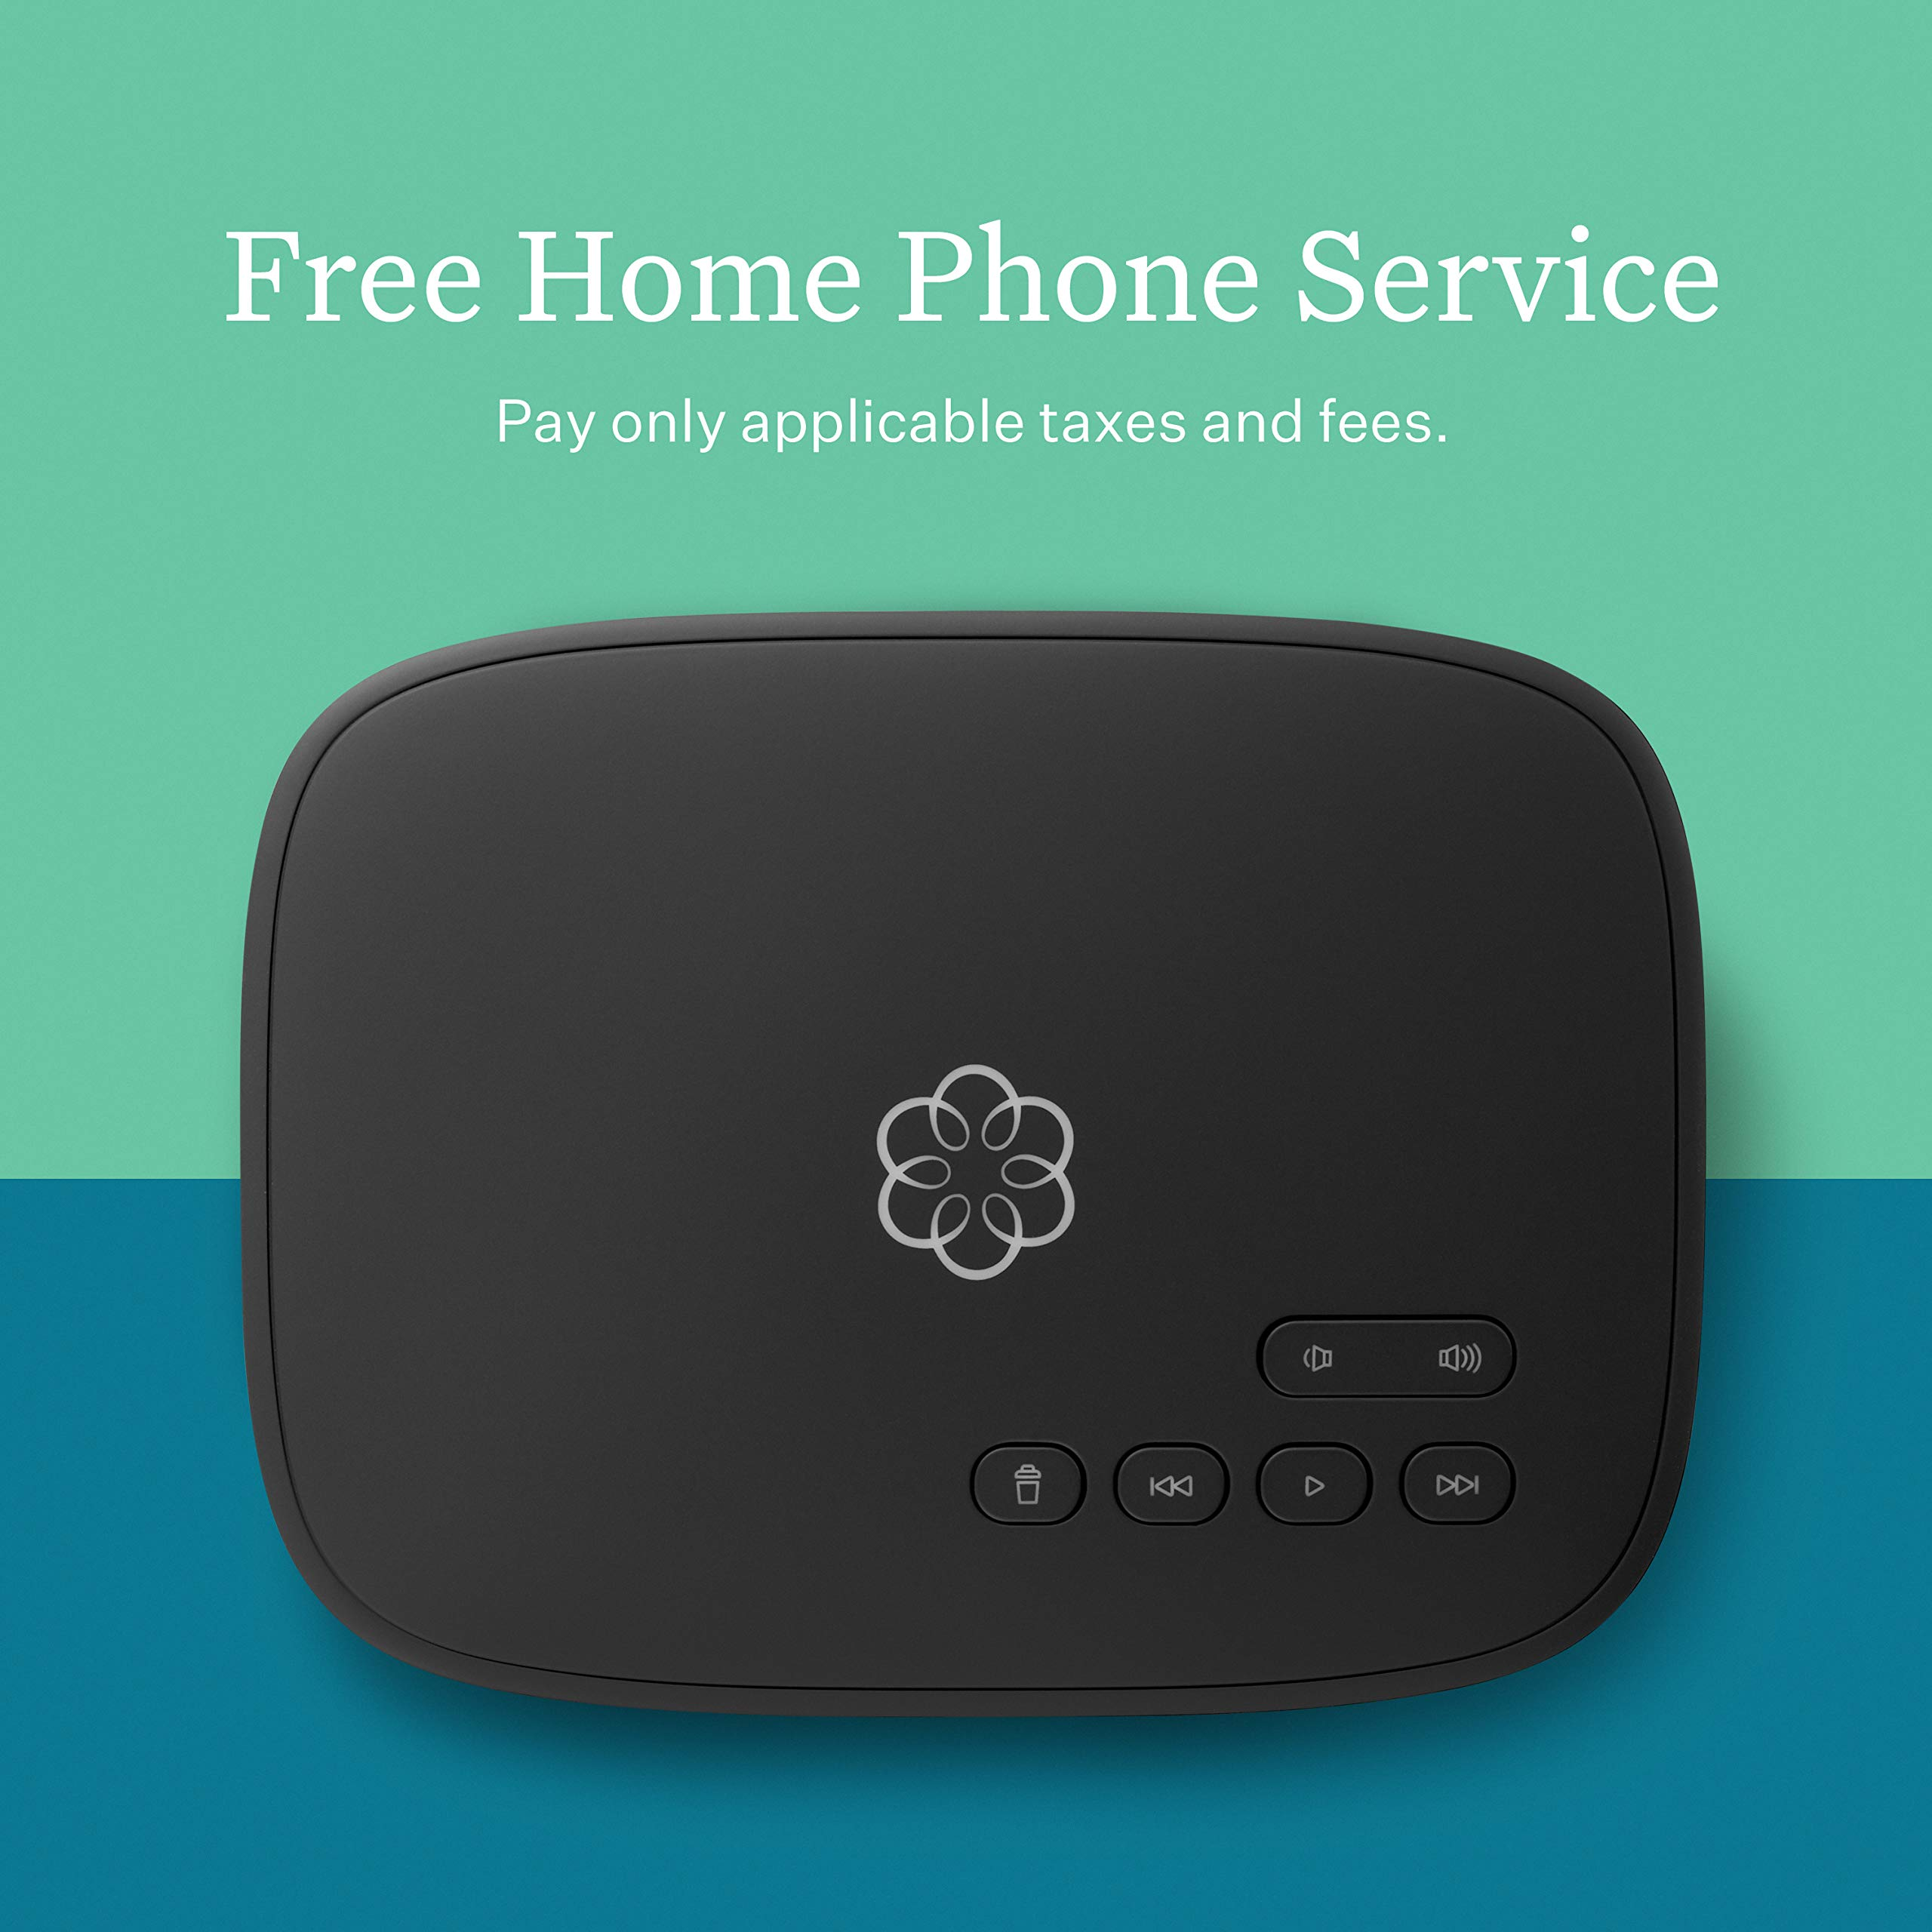 Ooma Telo Free Home Phone Service. Blocks Robocalls with Optional Premier Service, One Size, Black by ooma